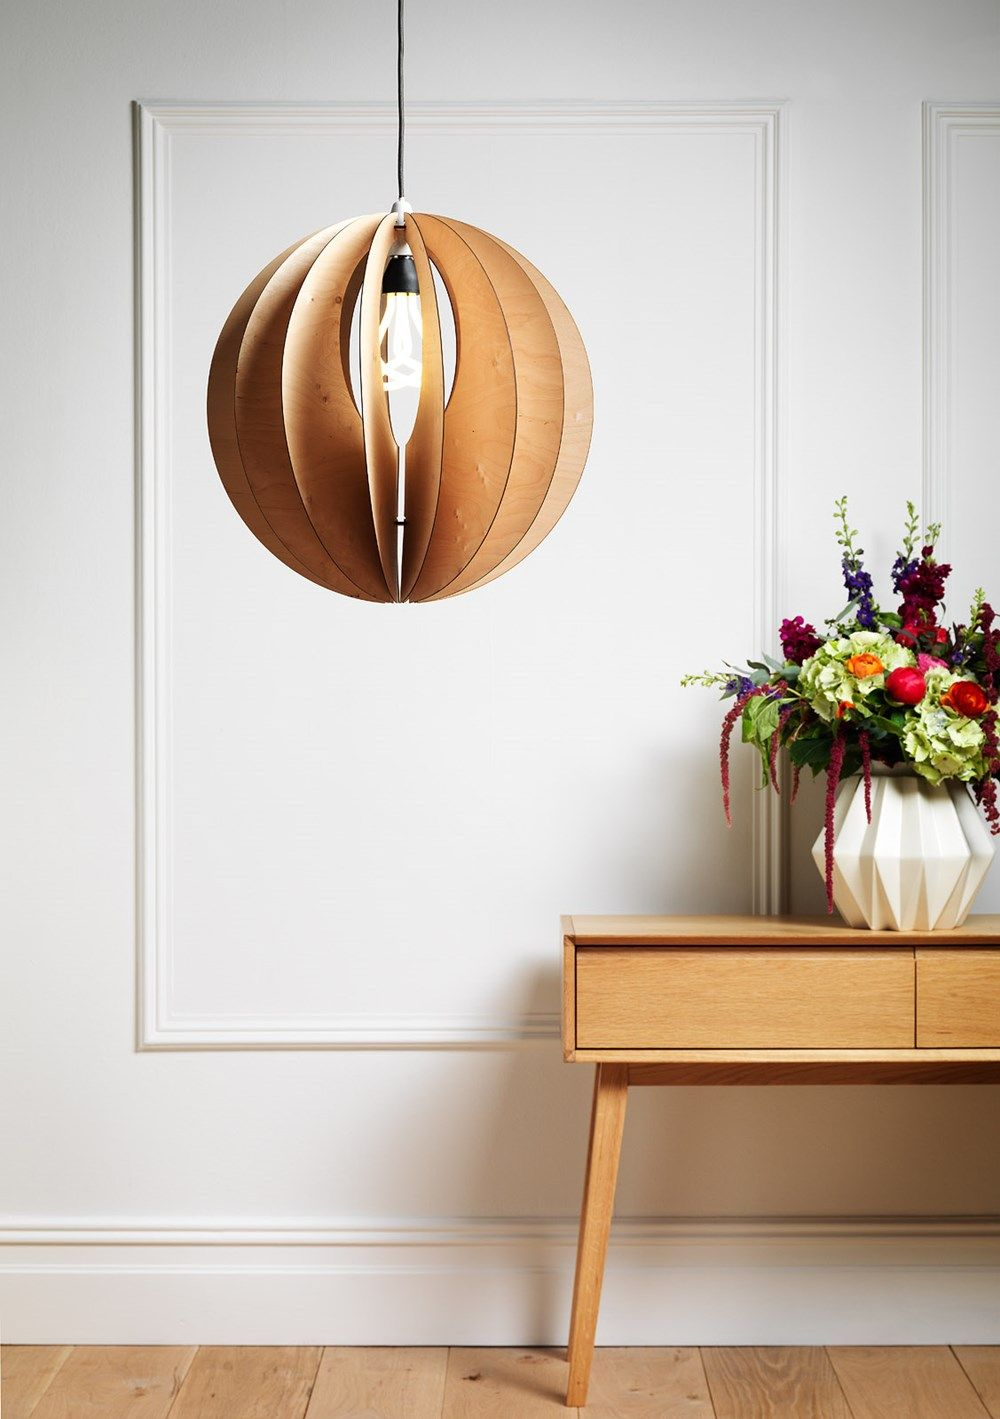 Sphery Lampshade by byKirsty - Radiance